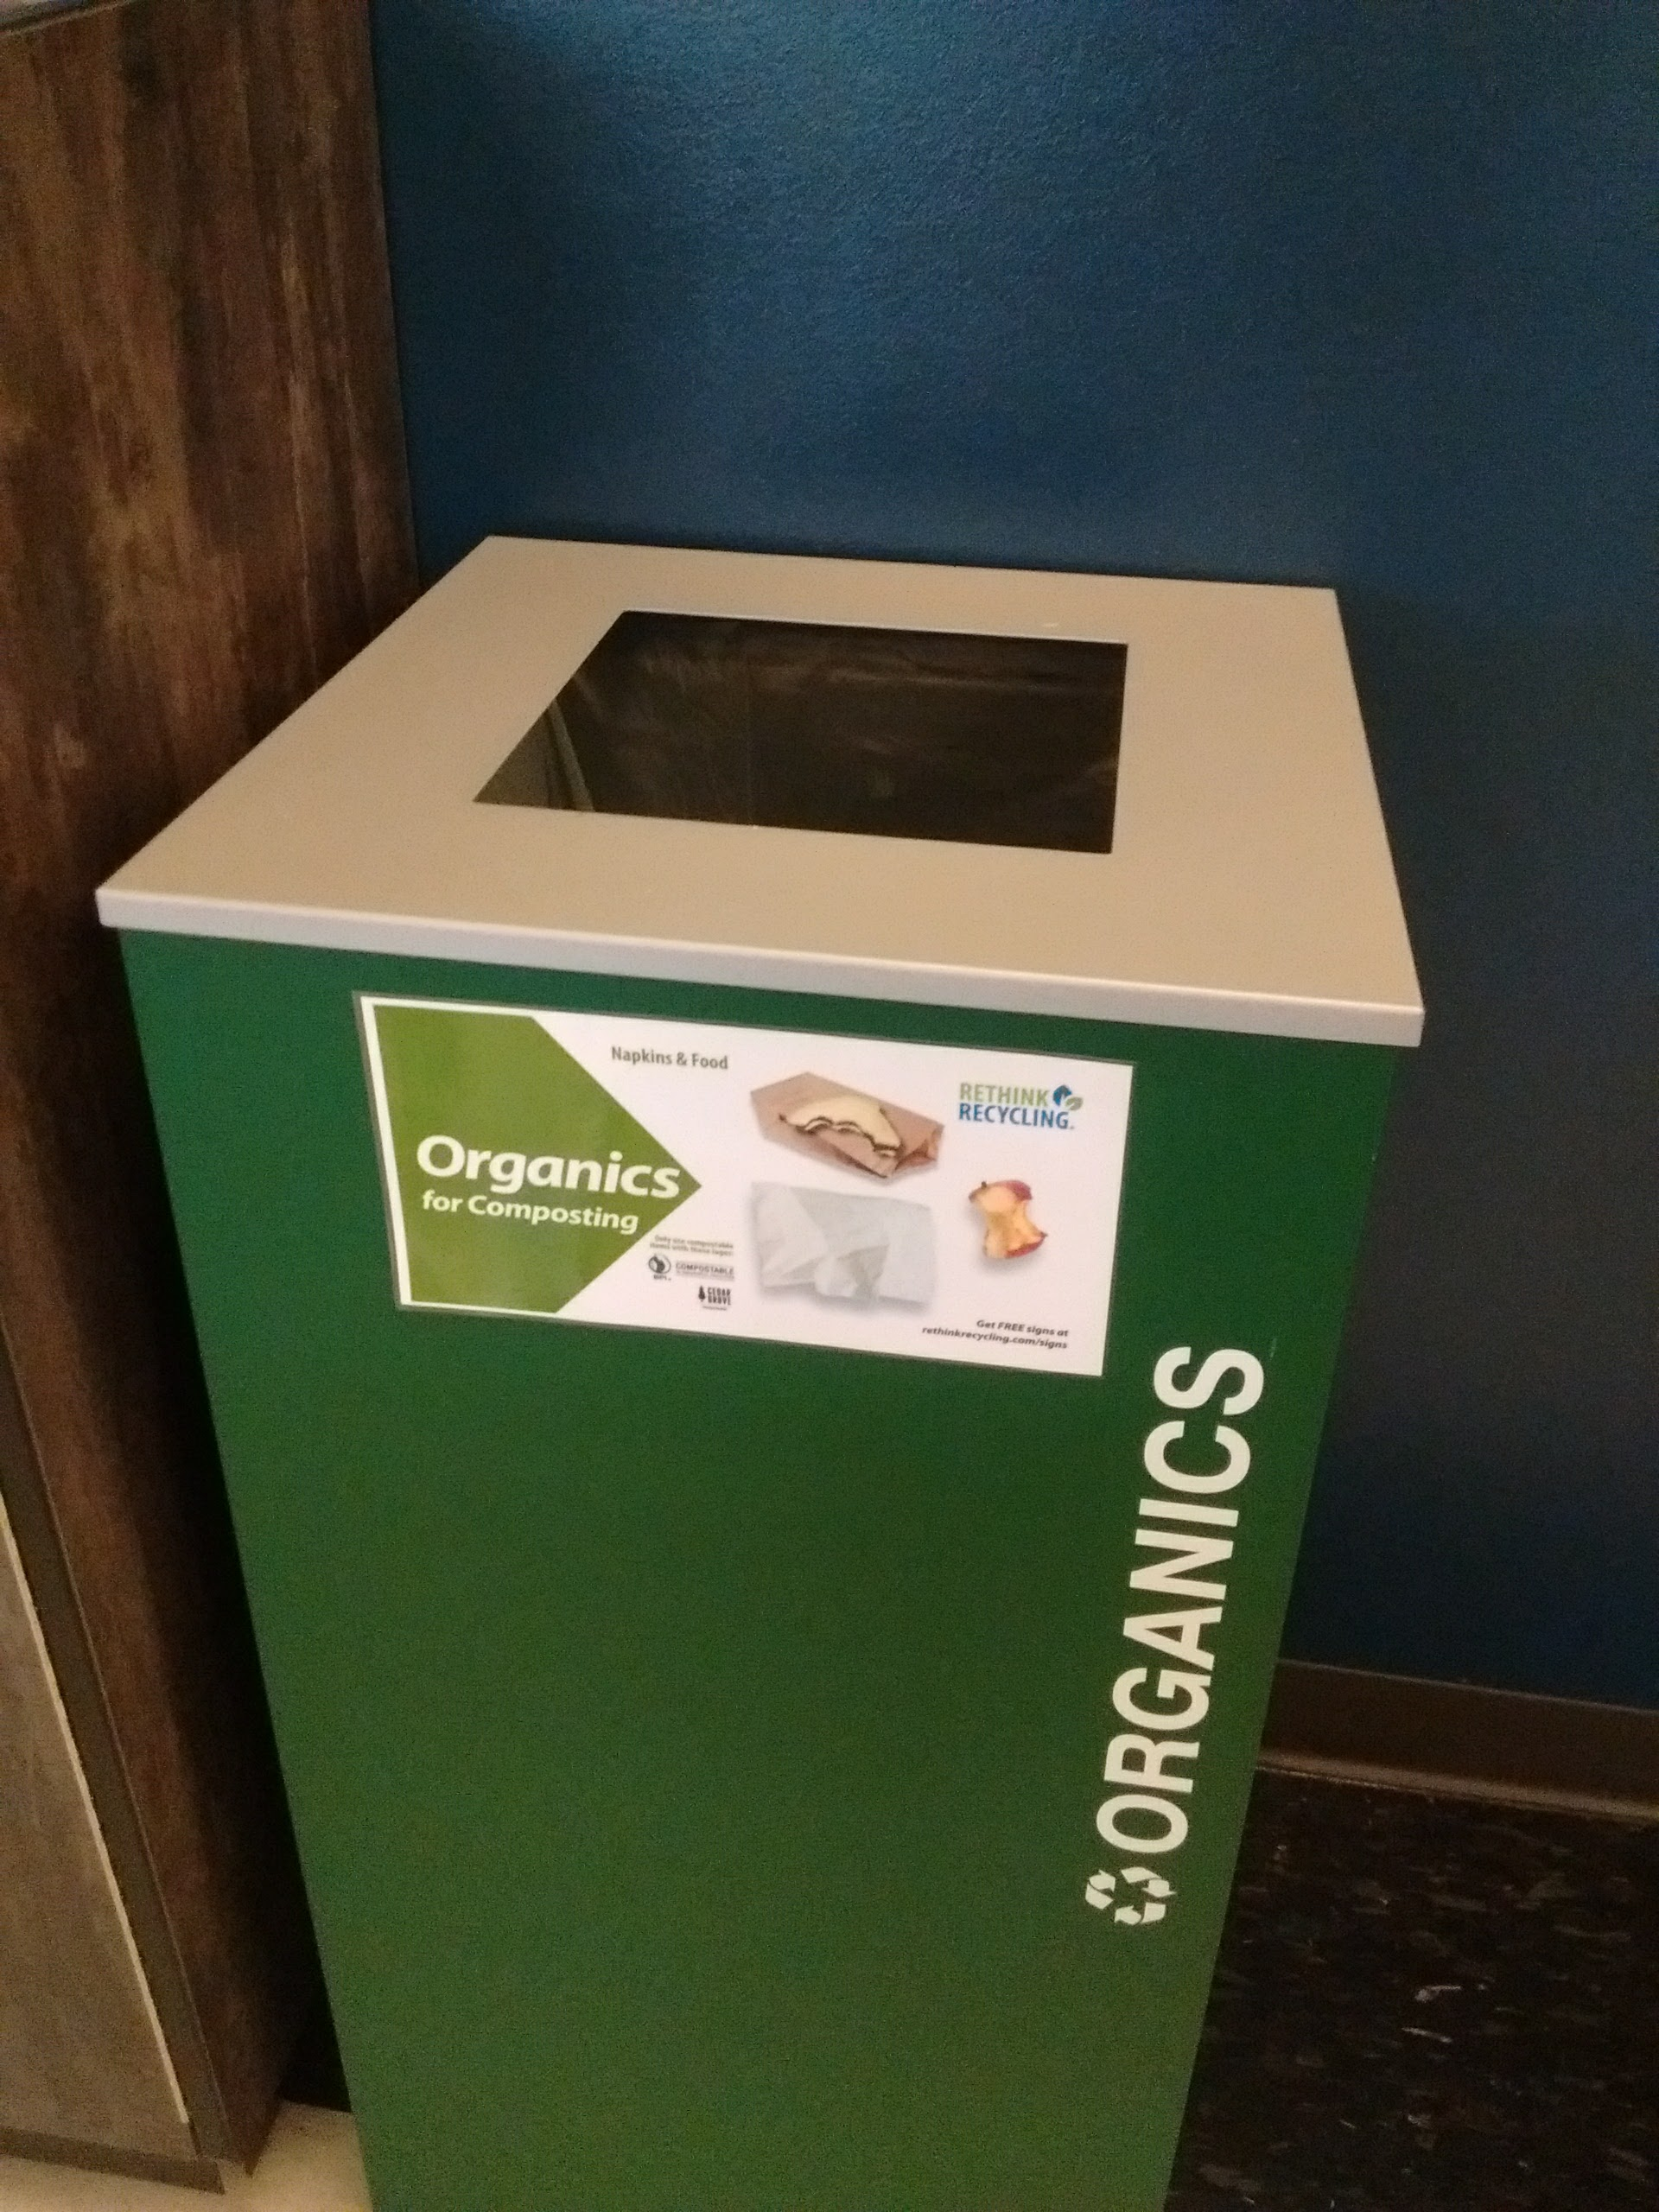 Bins such as the one pictured have popped up on campus for organic recycling (Photo Credit: Luke Gentle).